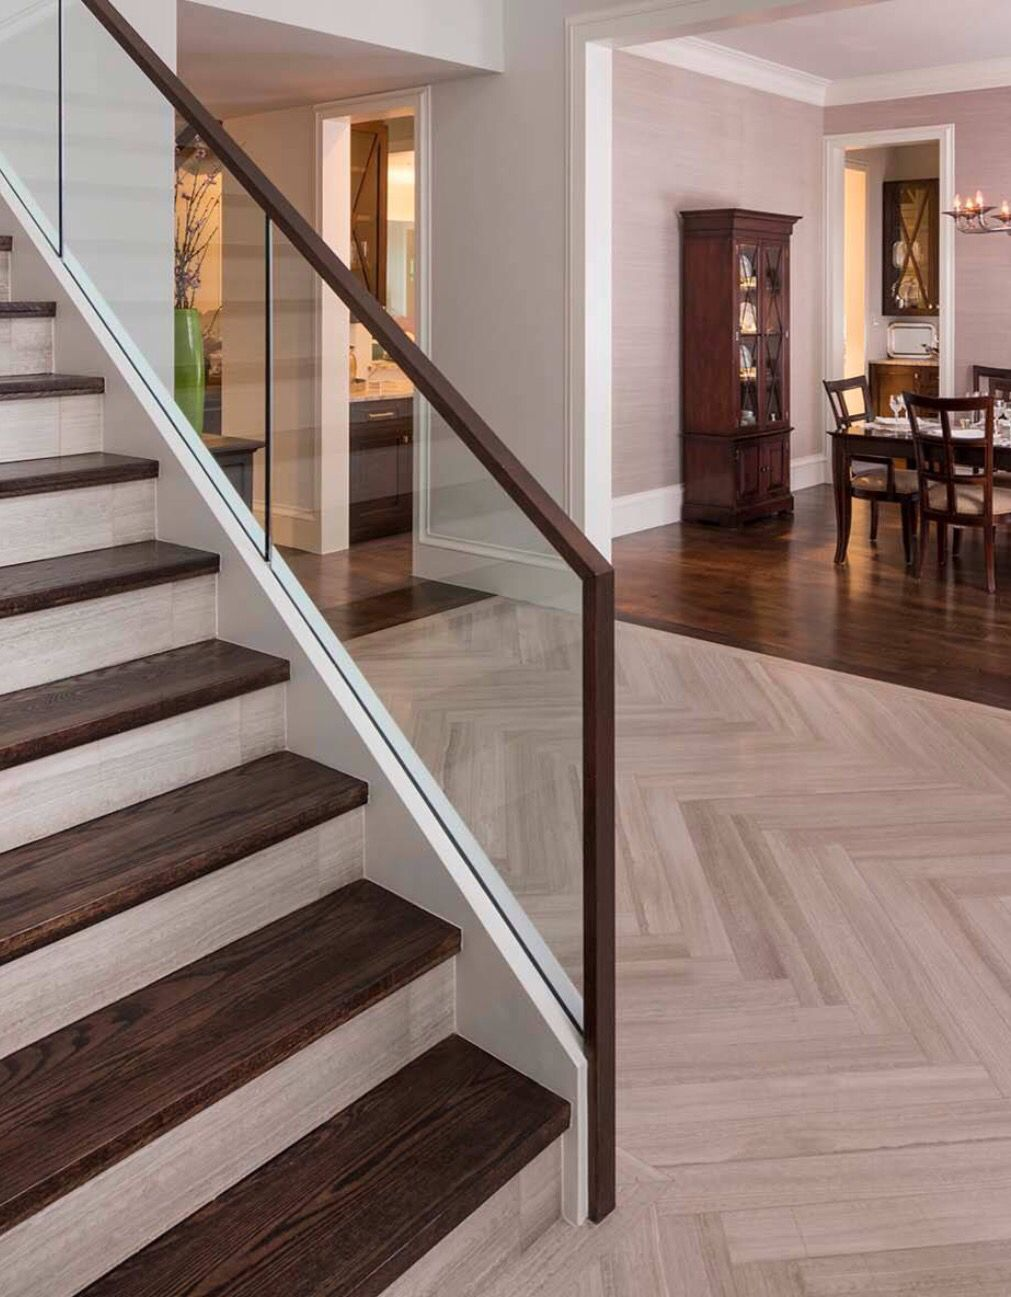 Tile And Wood On Stairs Interior Stair Railing Stair | Wood And Glass Handrail